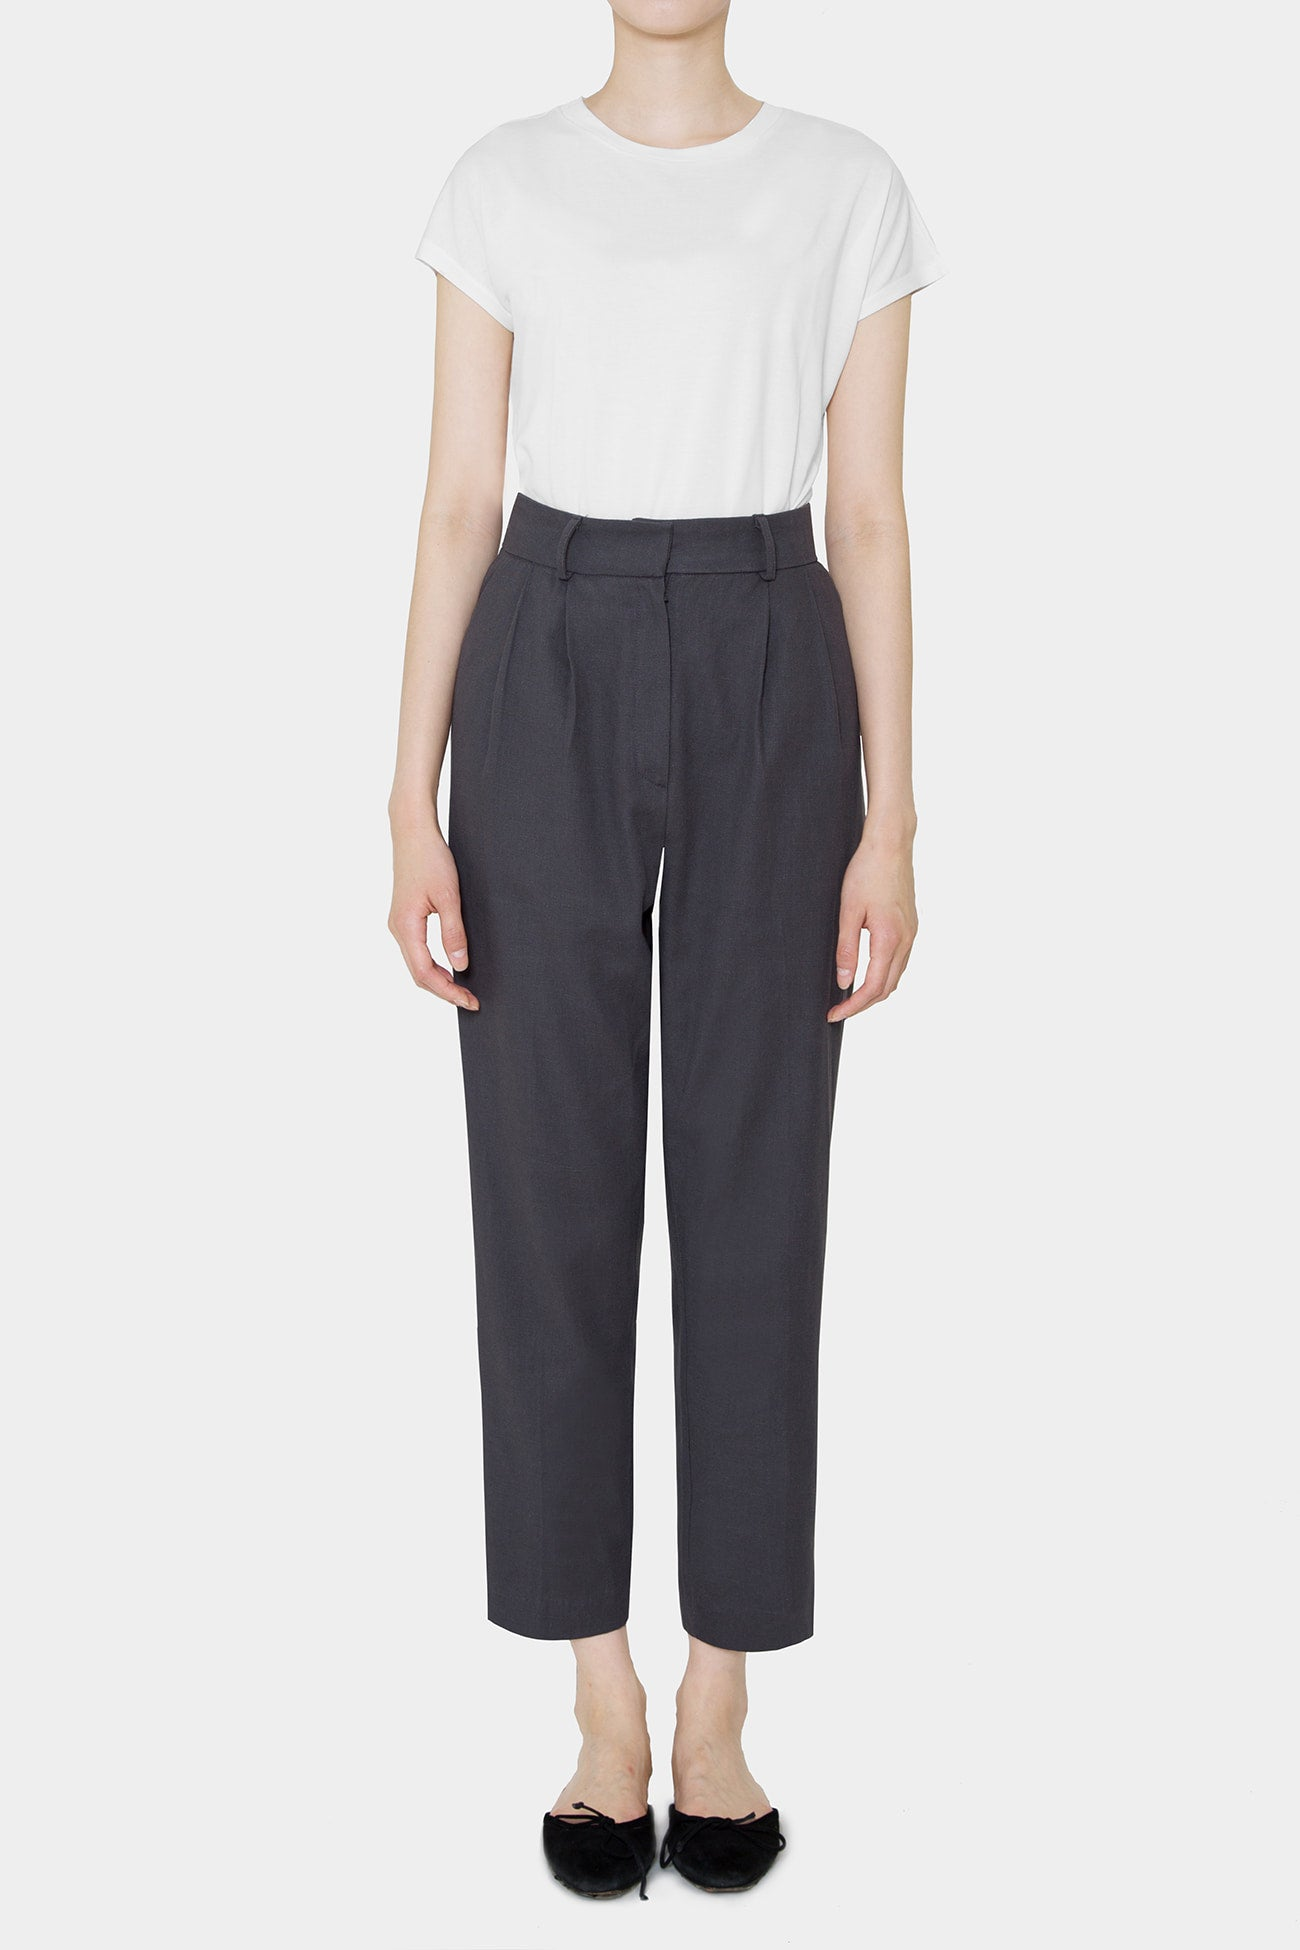 CHARCOAL SIMONE LINEN HIGHWAIST PANTS